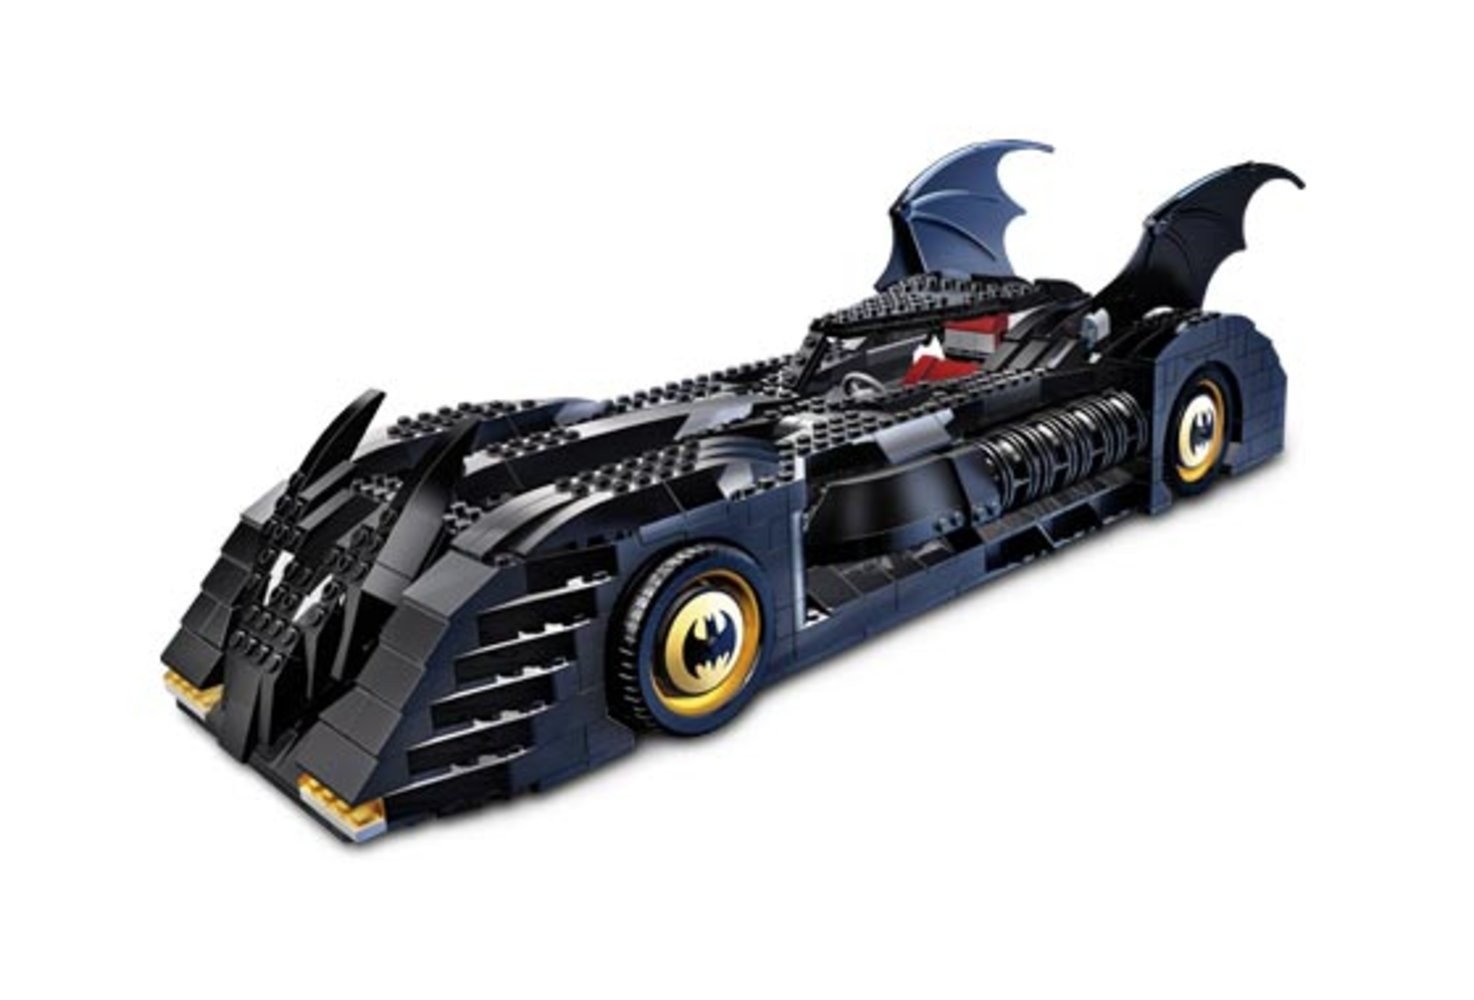 The Batmobile Ultimate Collectors' Edition